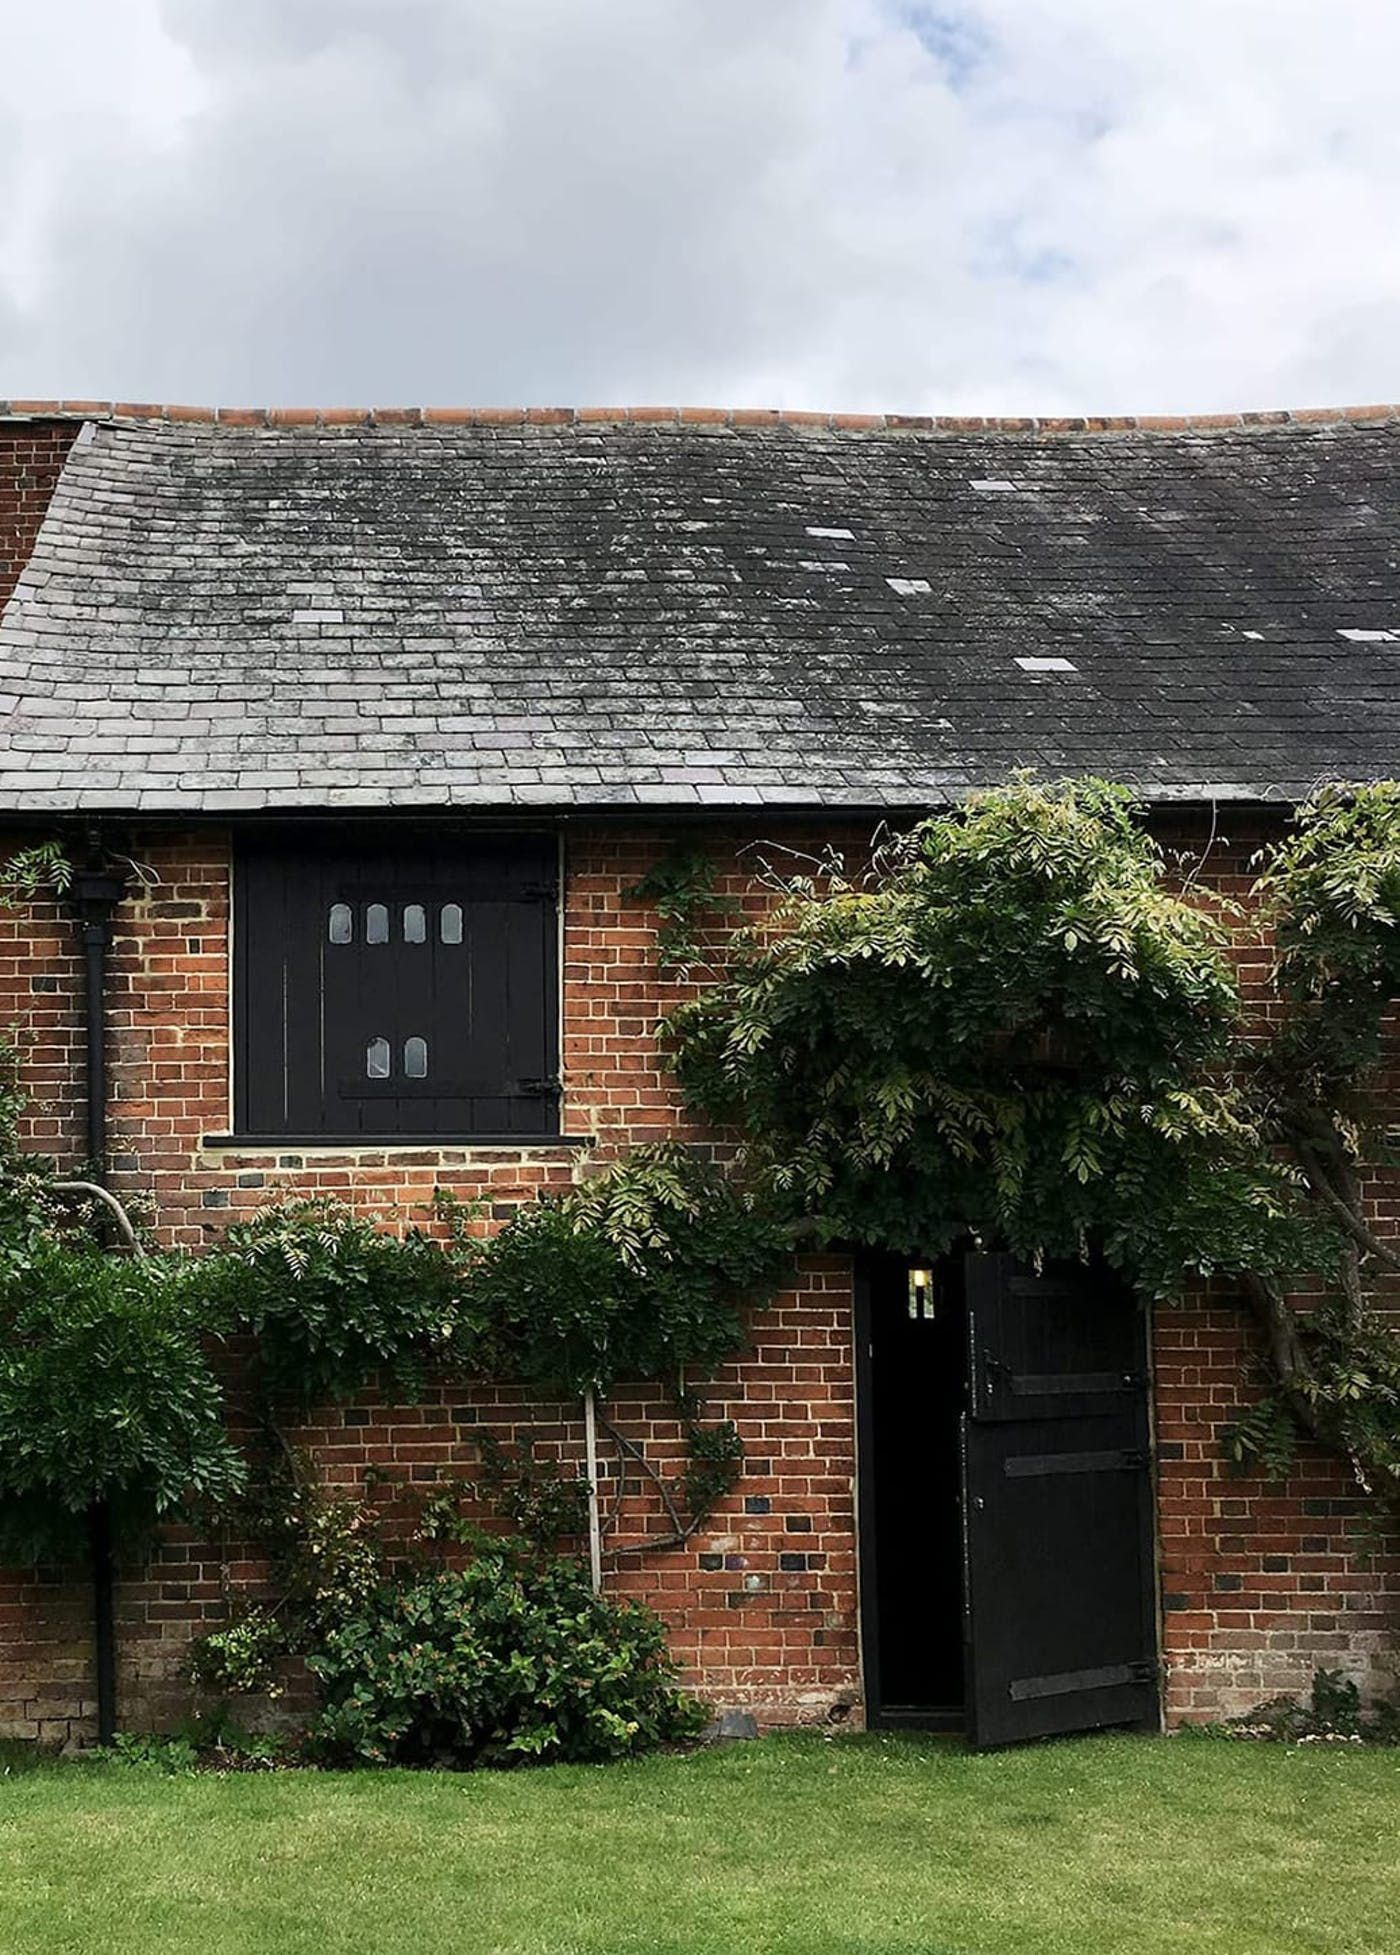 Exterior view of the existing Ashford Barn conversion project designed by From Works.